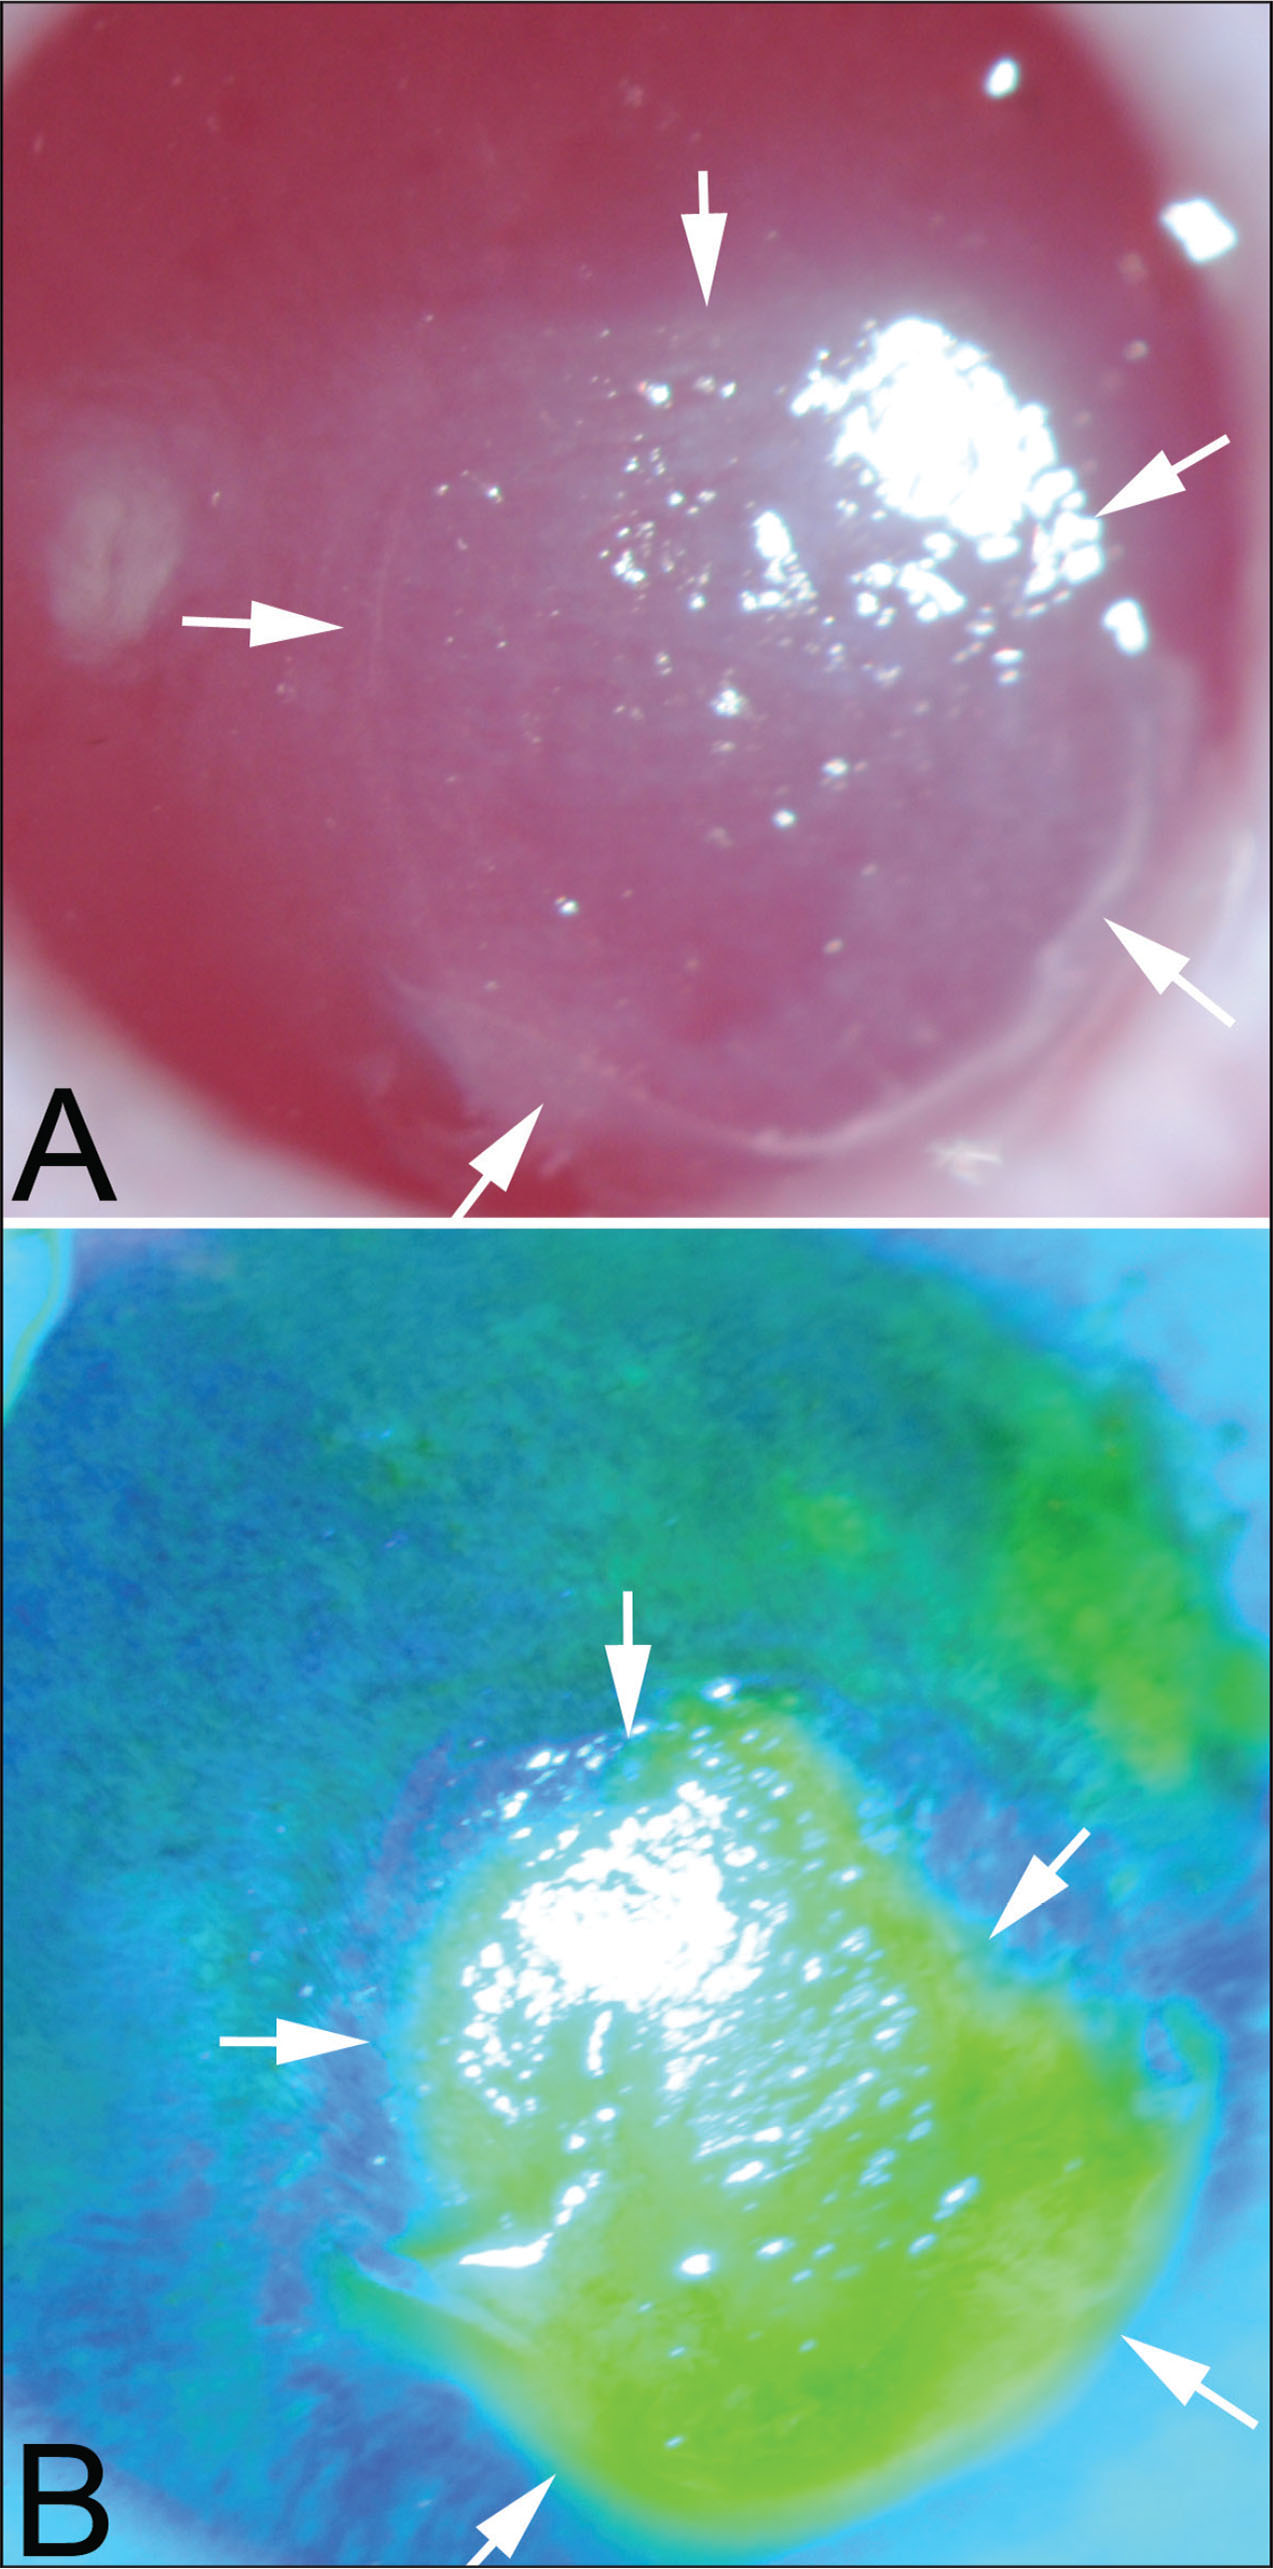 Slit-lamp photographs of a persistent epithelial defect (PED) in the cornea of rabbit 1 at 3 weeks after −4.50 diopter photorefractive keratectomy. (A) The epithelial defect is delineated by arrows and can be noted to have a thickened epithelial leading edge around the perimeter of the PED. The bare stroma within the PED is opaque and the opacity in the stroma extends a small distance peripheral to the leading edge of the PED. (B) Fluorescein staining of the same cornea shows the PED (original magnification ×10).